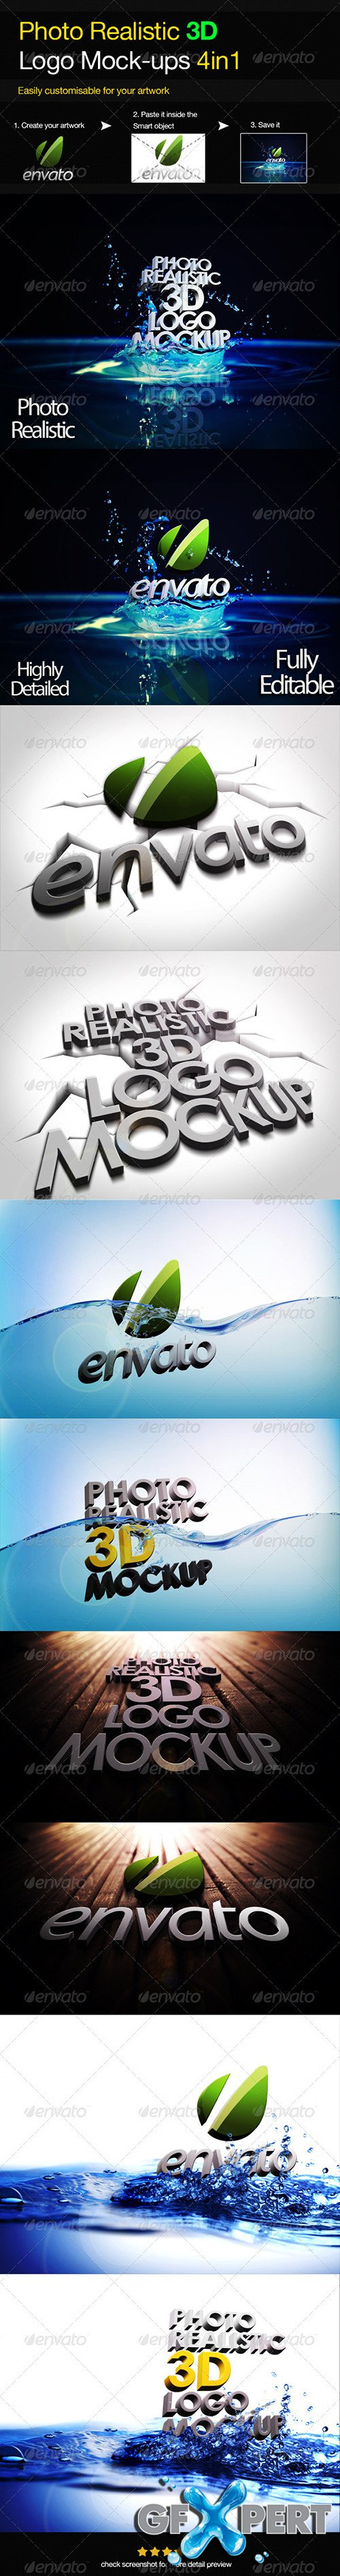 Photo Realistic 3D Logo Mock-up V.3